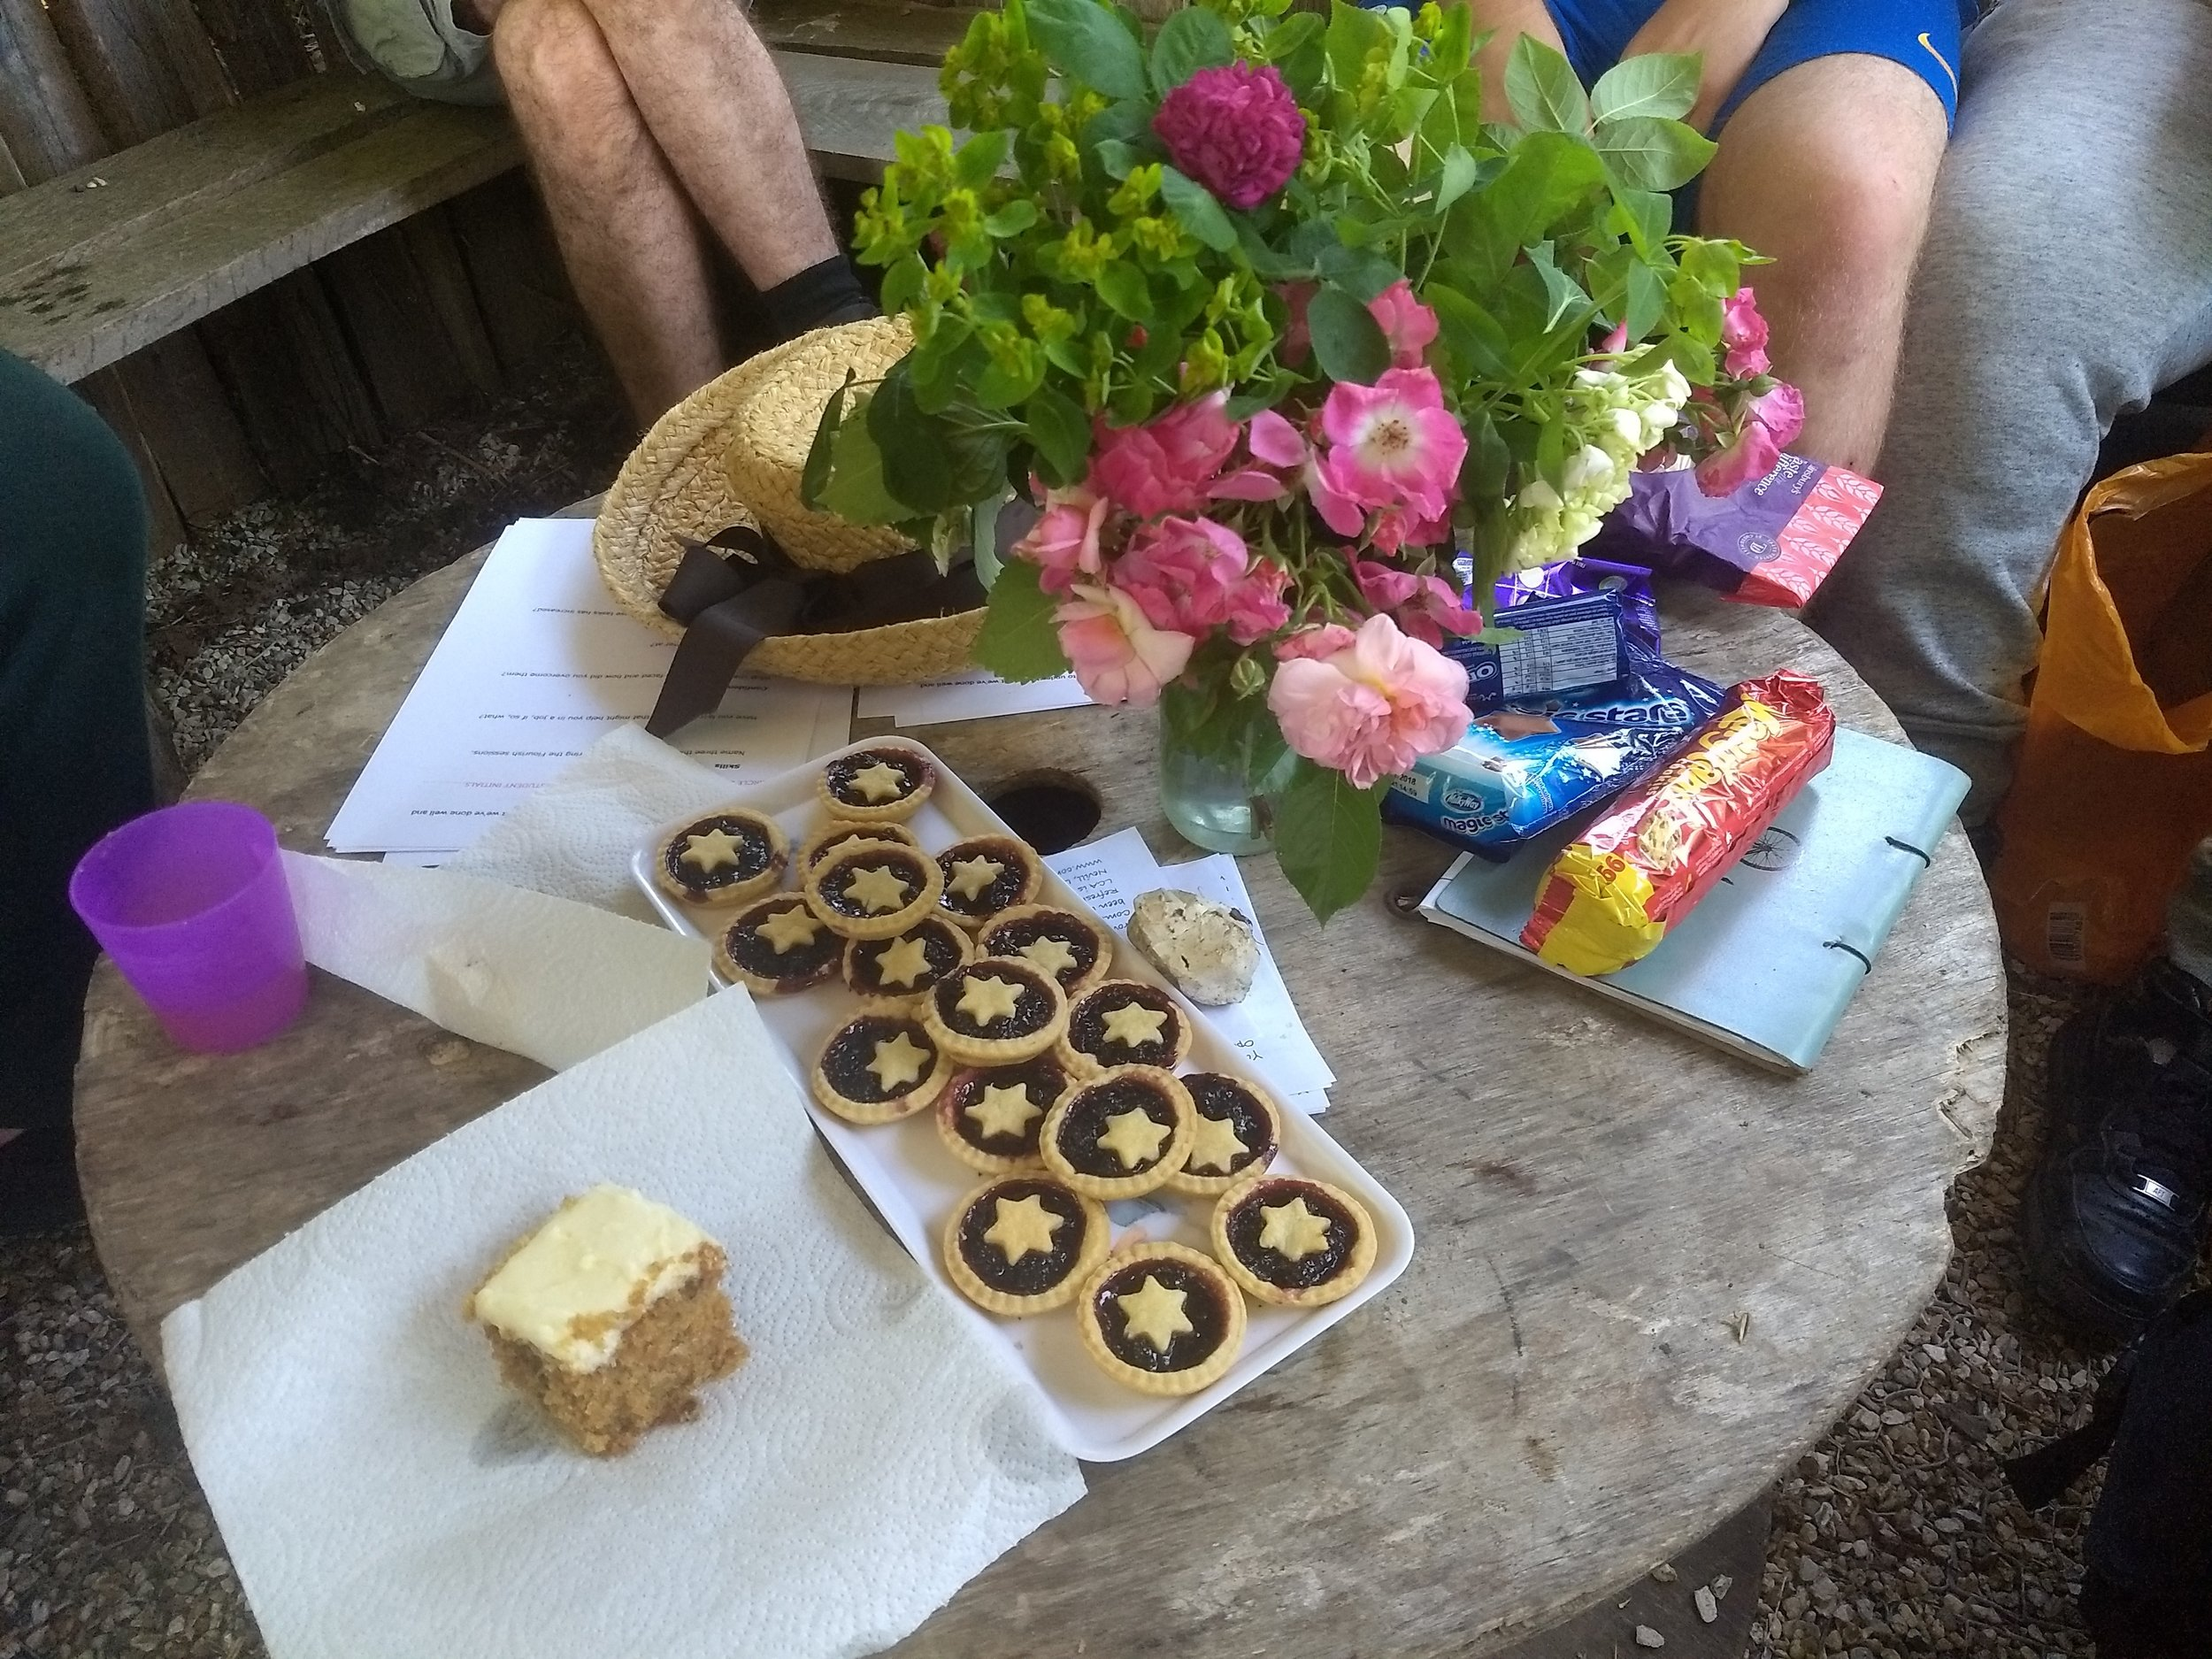 Flowers, cake and tarts